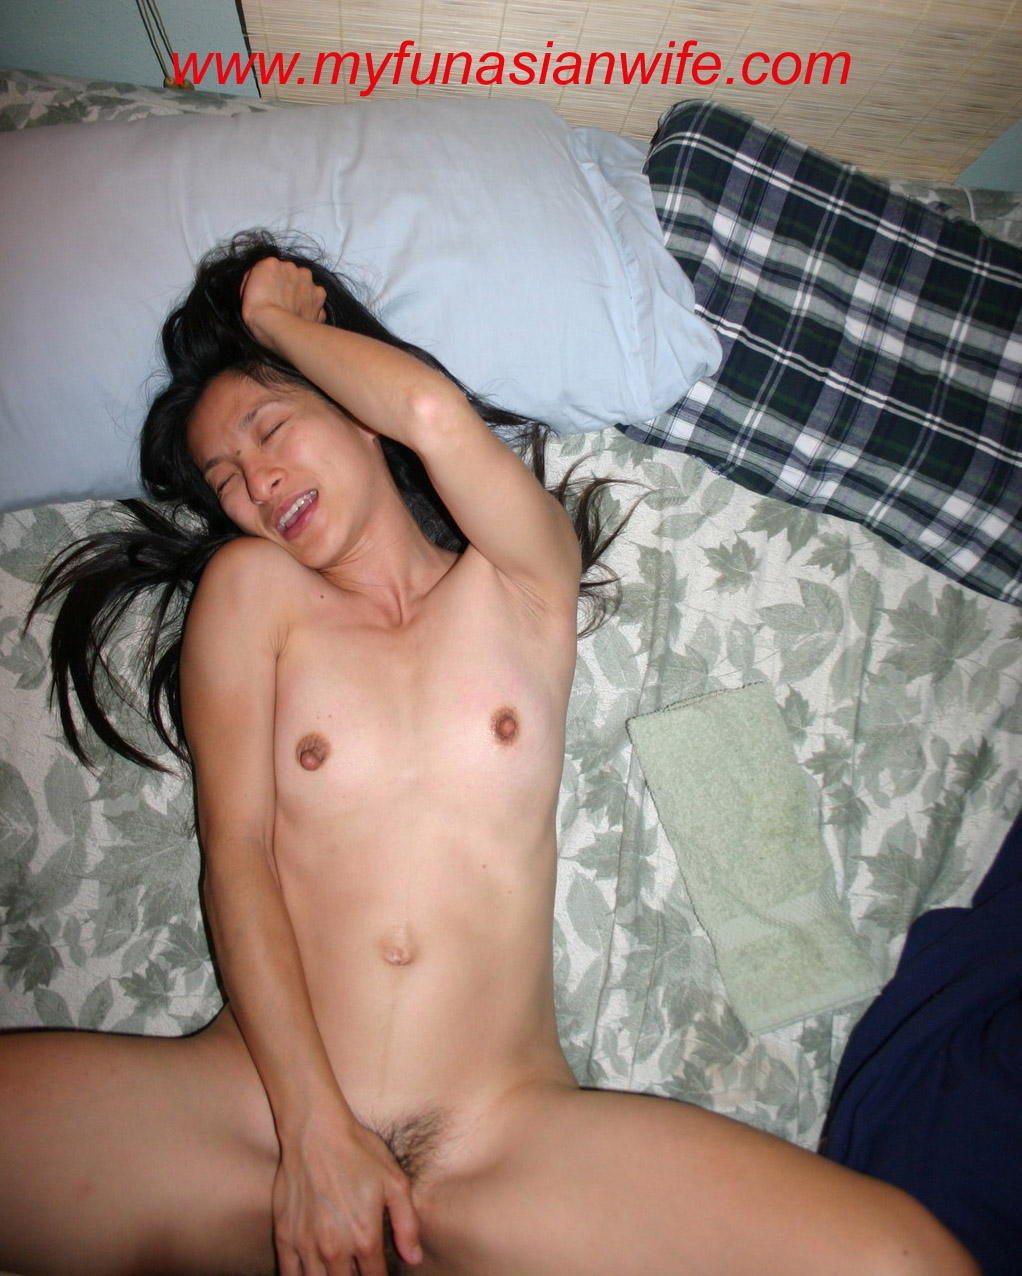 3 my wife fucking her best friend from high school 1